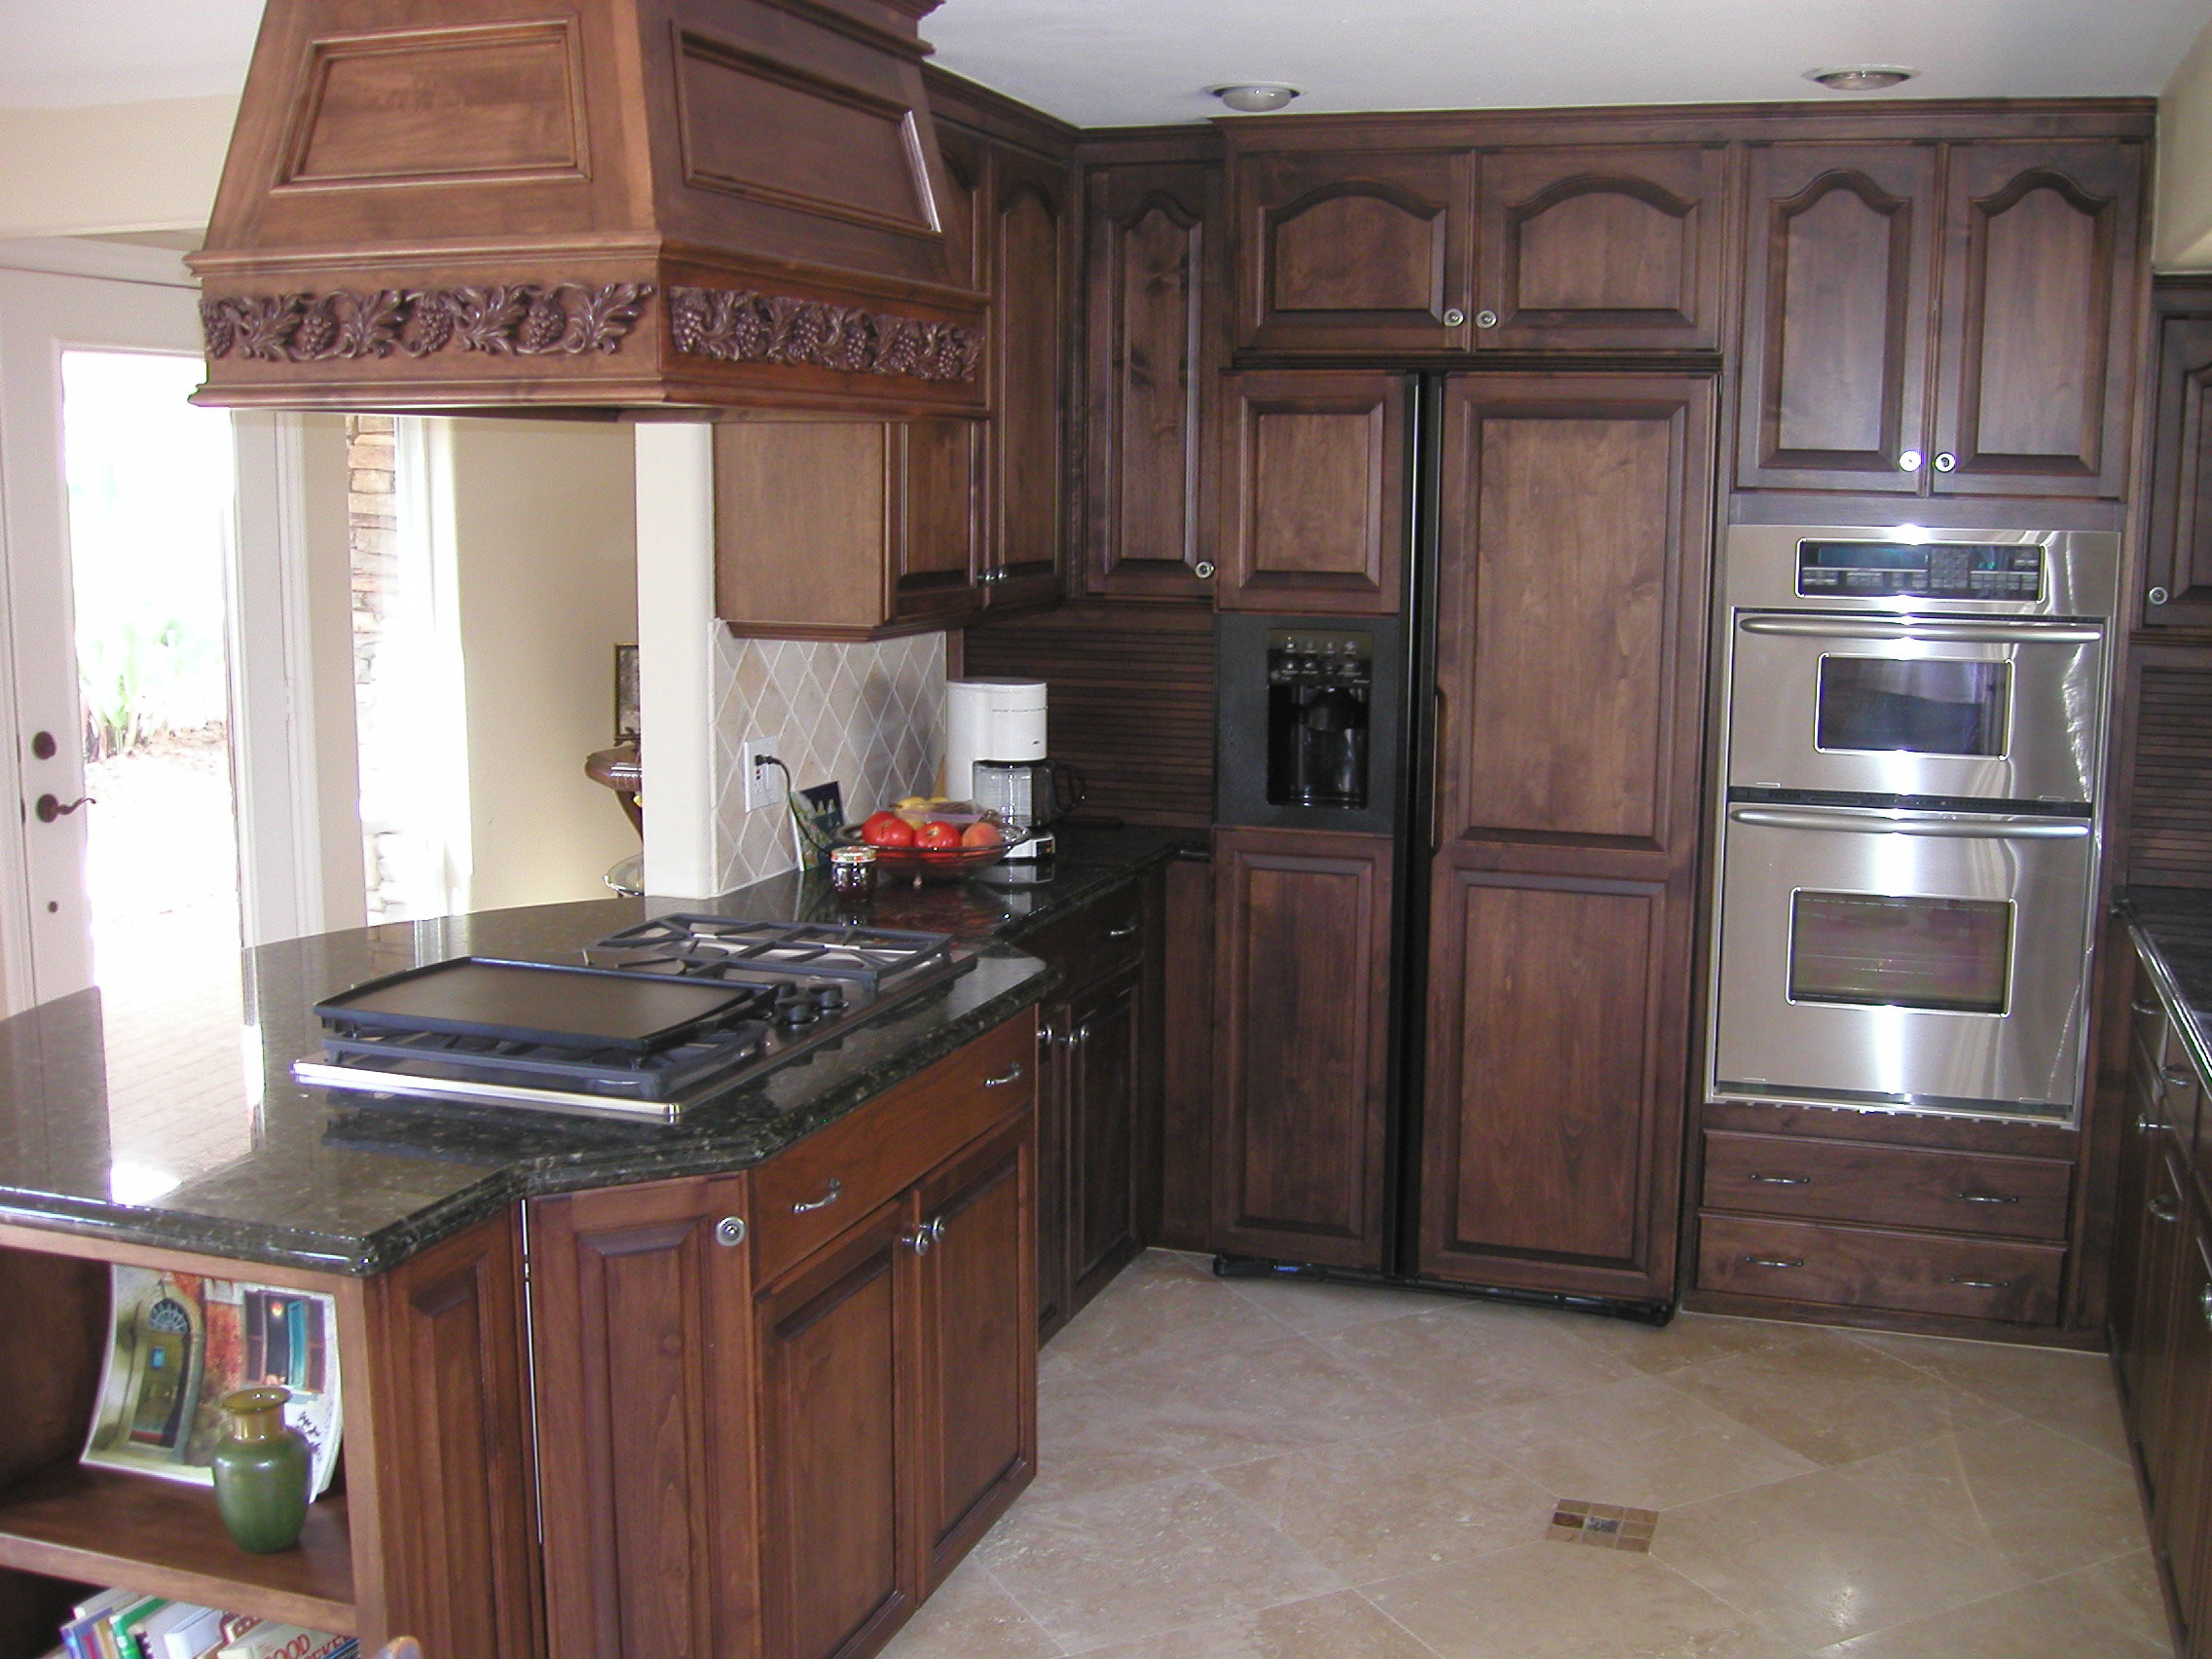 New SoCal Creative Woodworks kitchen cabinets Stained dark oak and